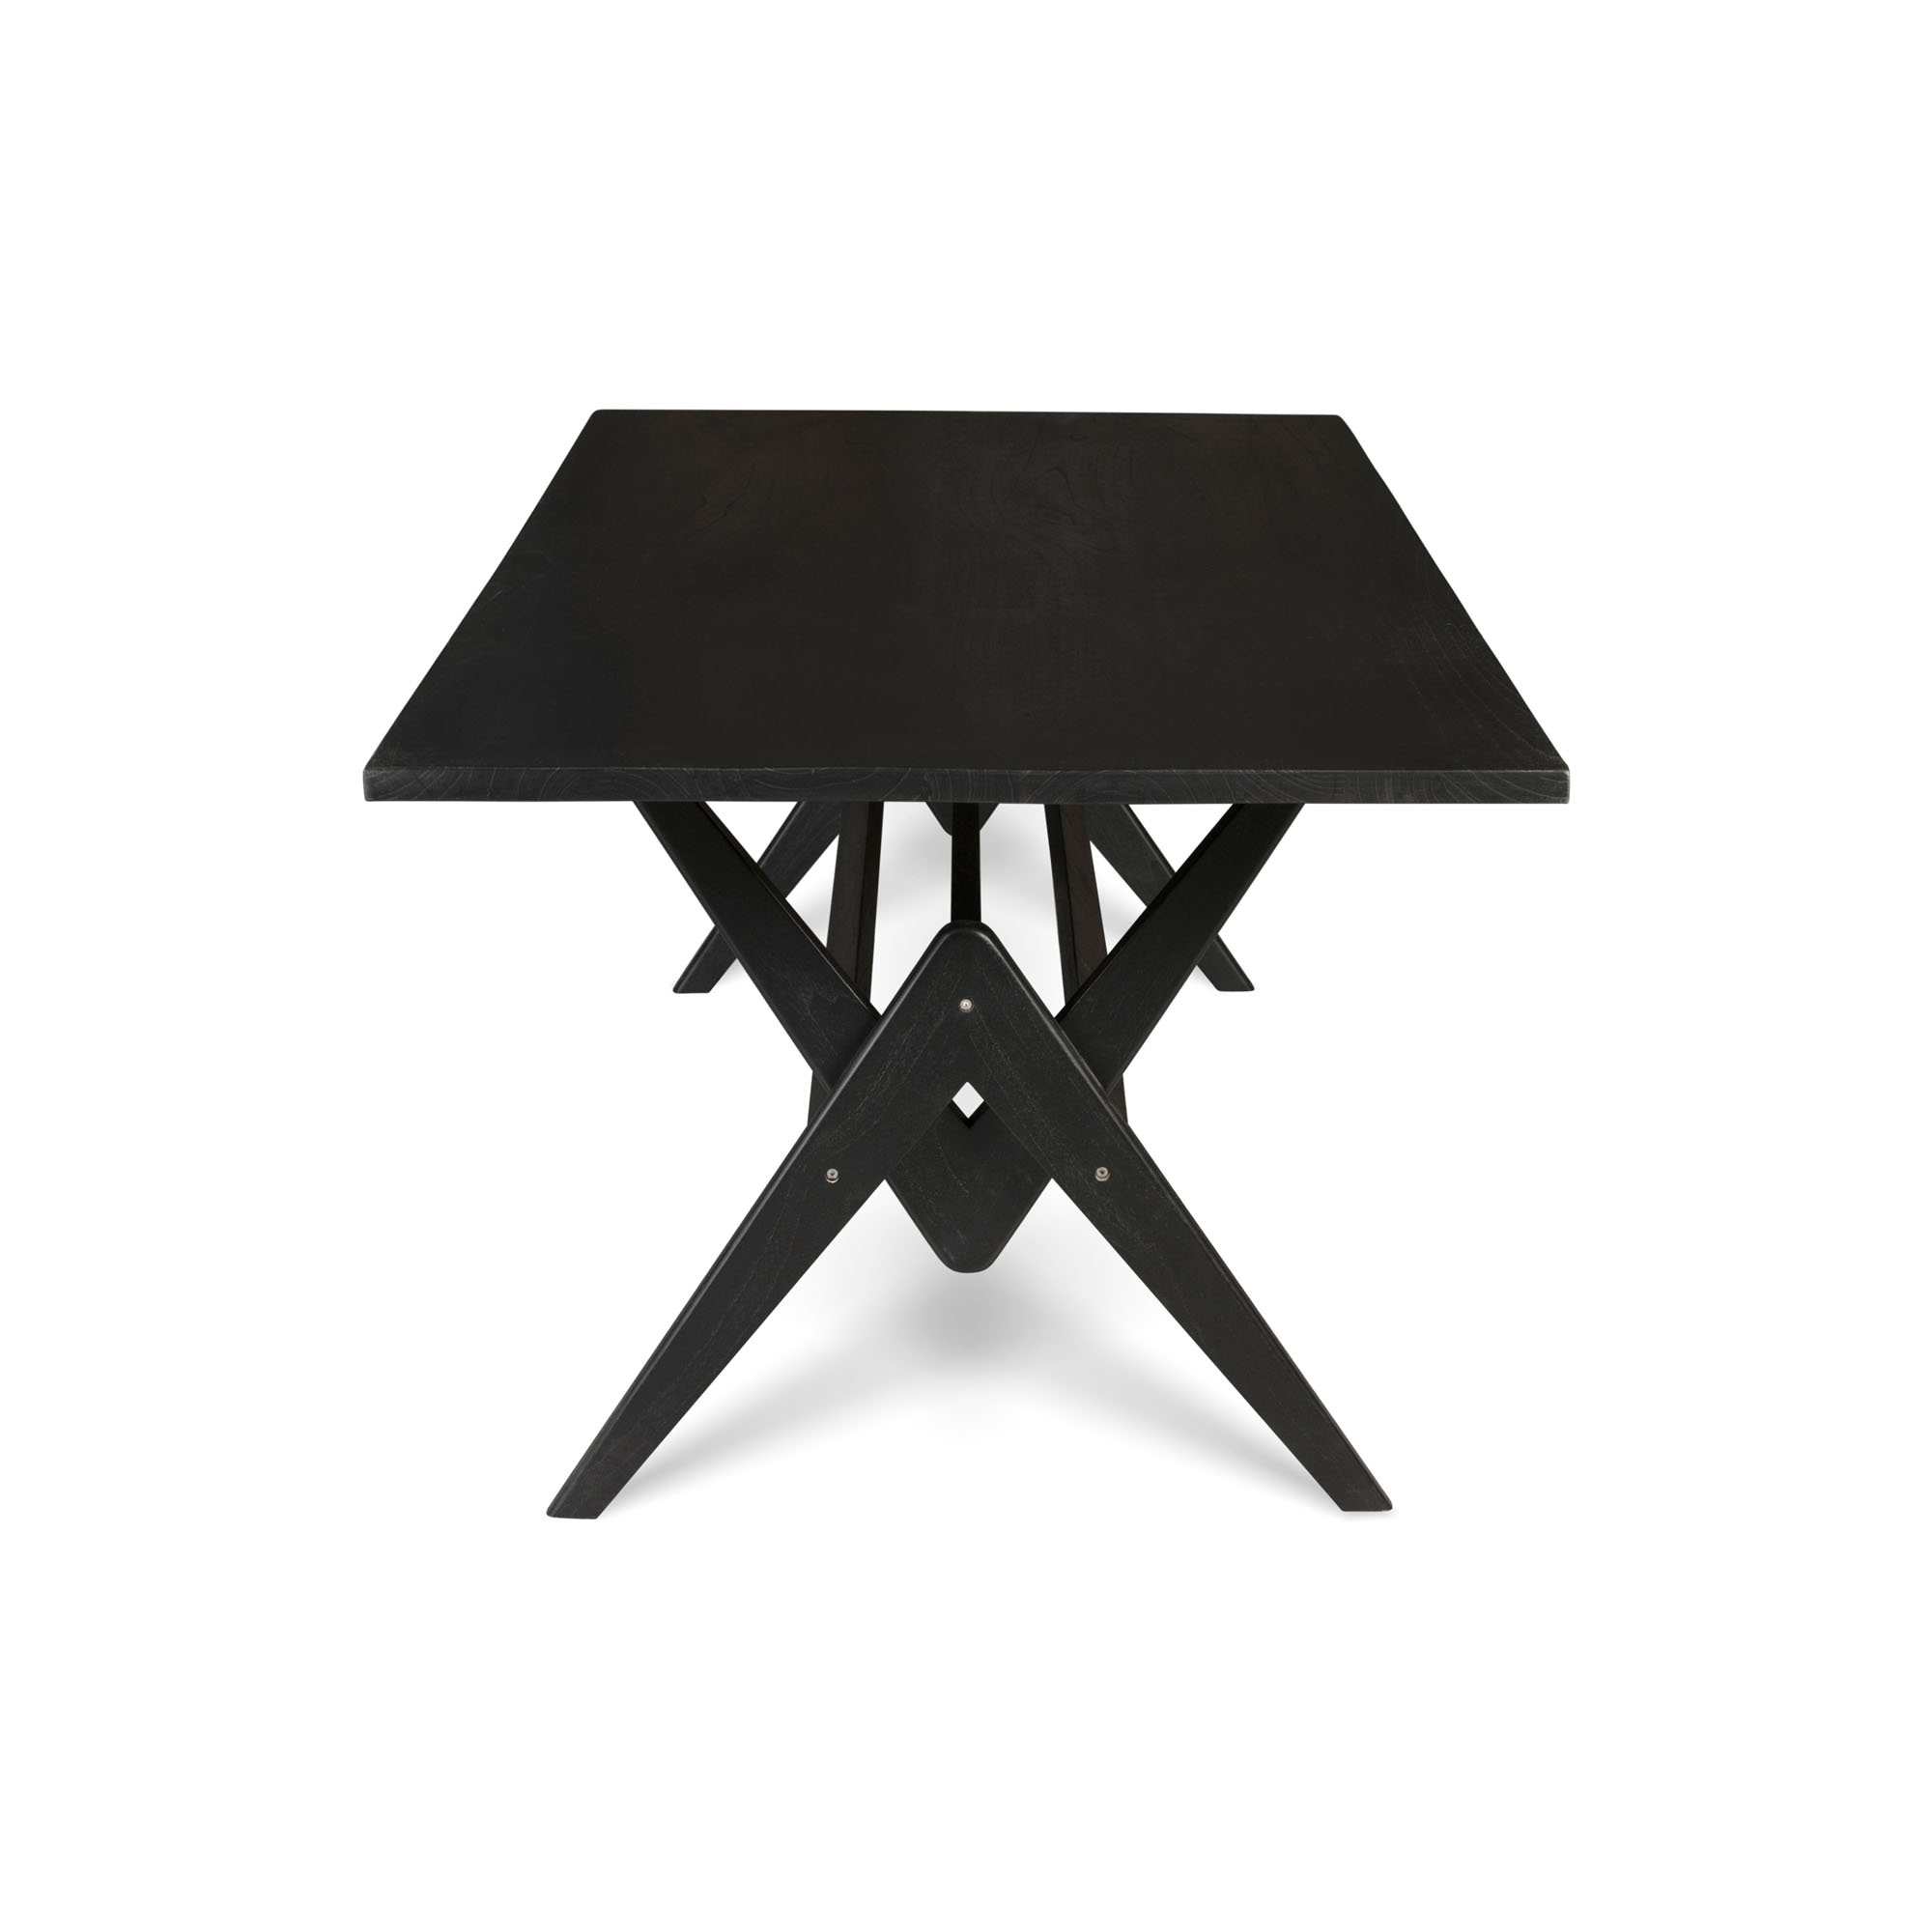 Dining Table W.T.H. 220 - Charcoal Black-1